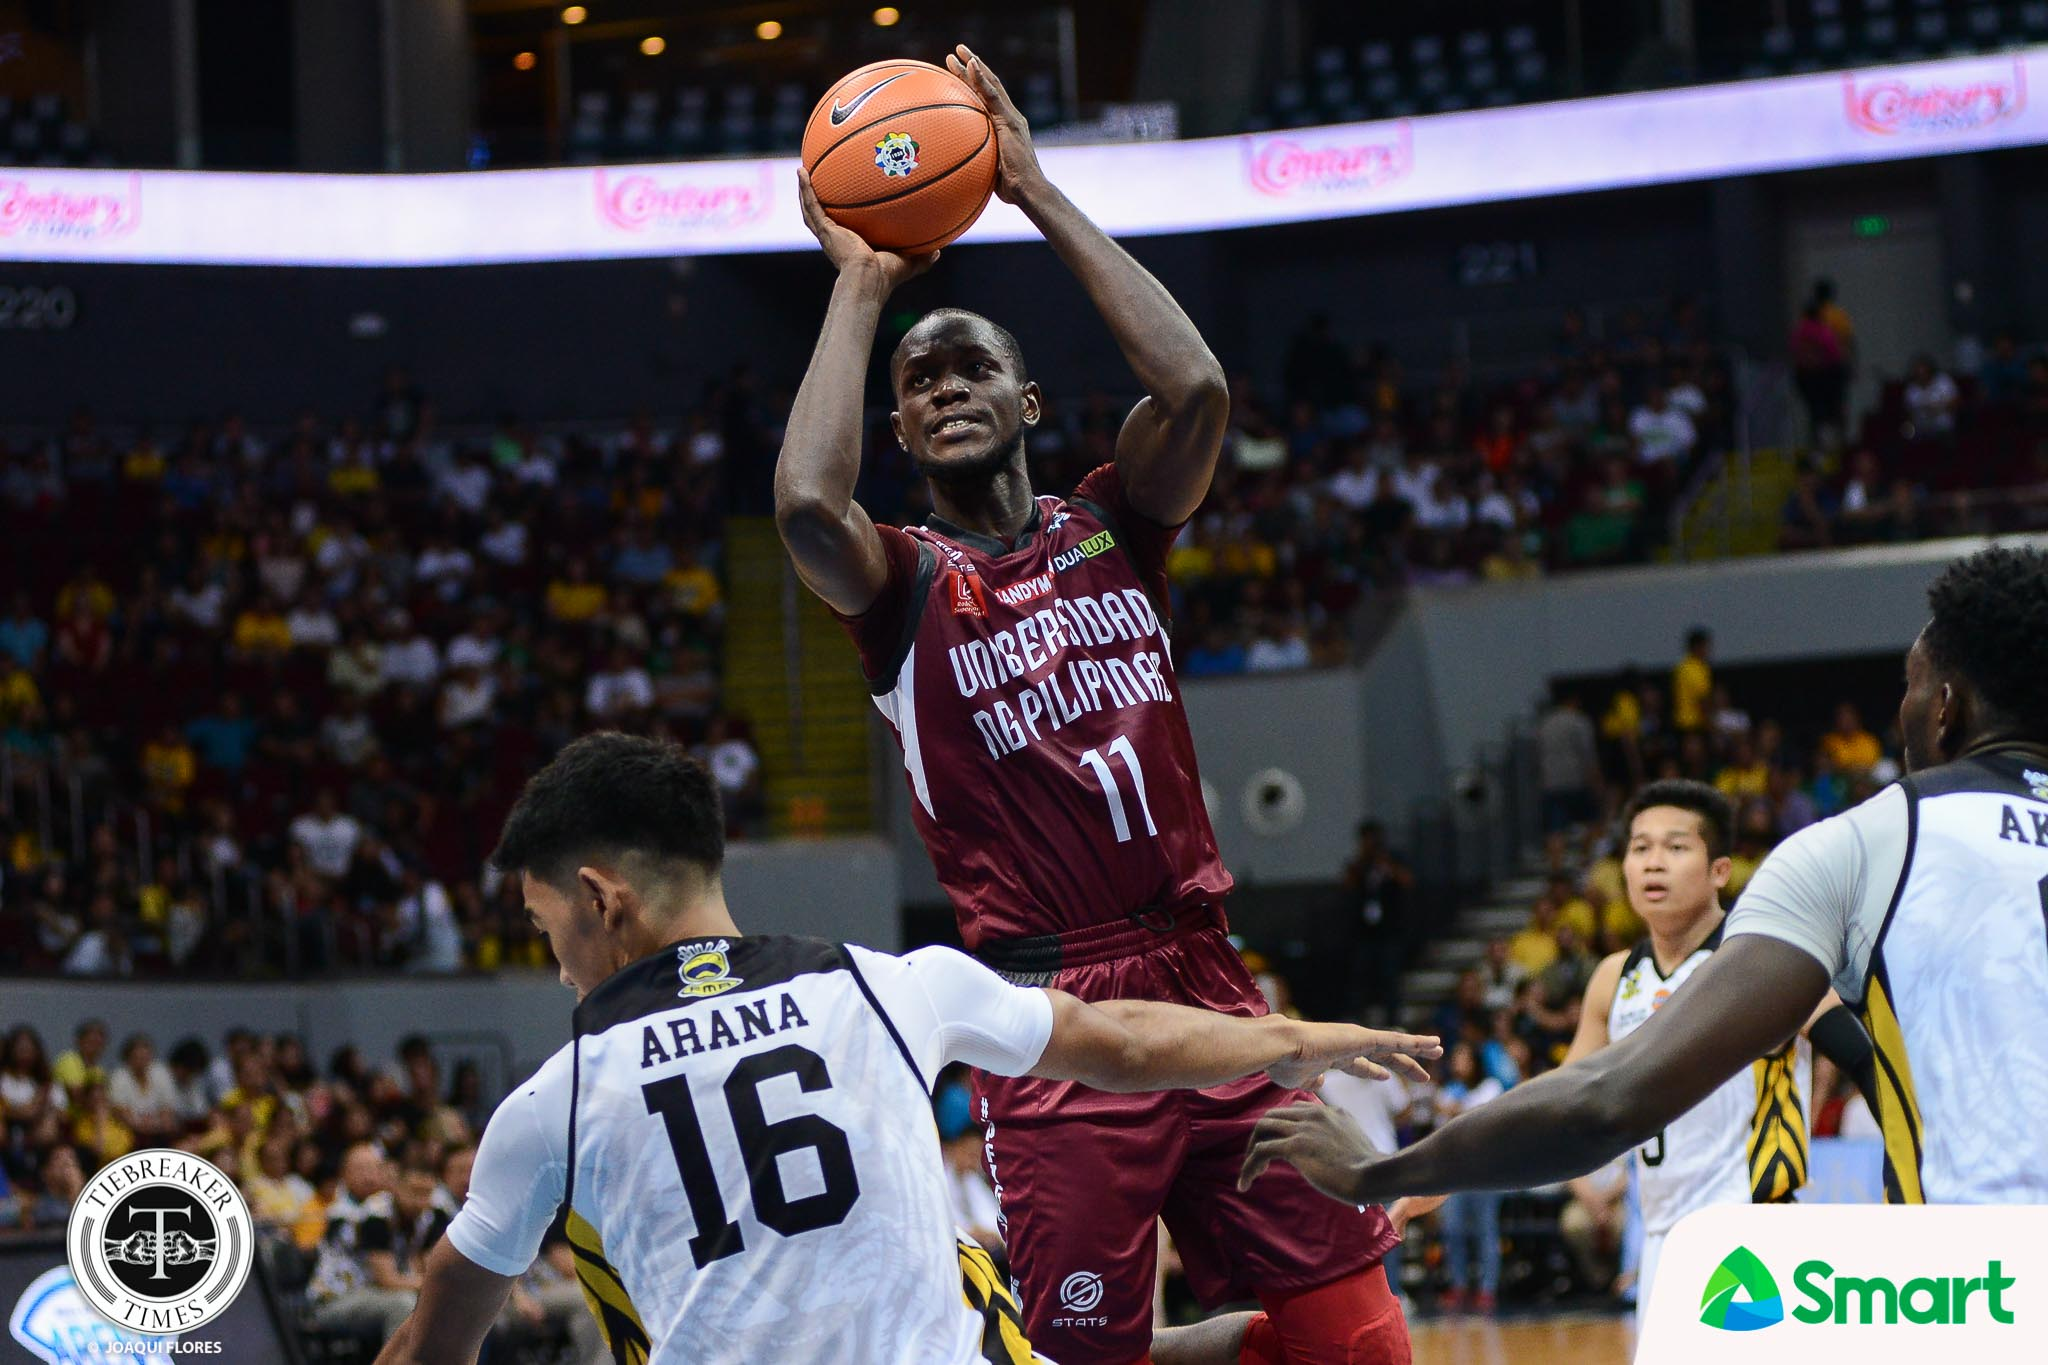 Philippine Sports News - Tiebreaker Times Ibrahim Ouattara doesn't mind if he's the stop-gap for Bright Akhuetie Basketball News UAAP UP  UP Men's Basketball UAAP Season 80 Men's Basketball UAAP Season 80 Ibrahim Ouattara Bright Akhuetie